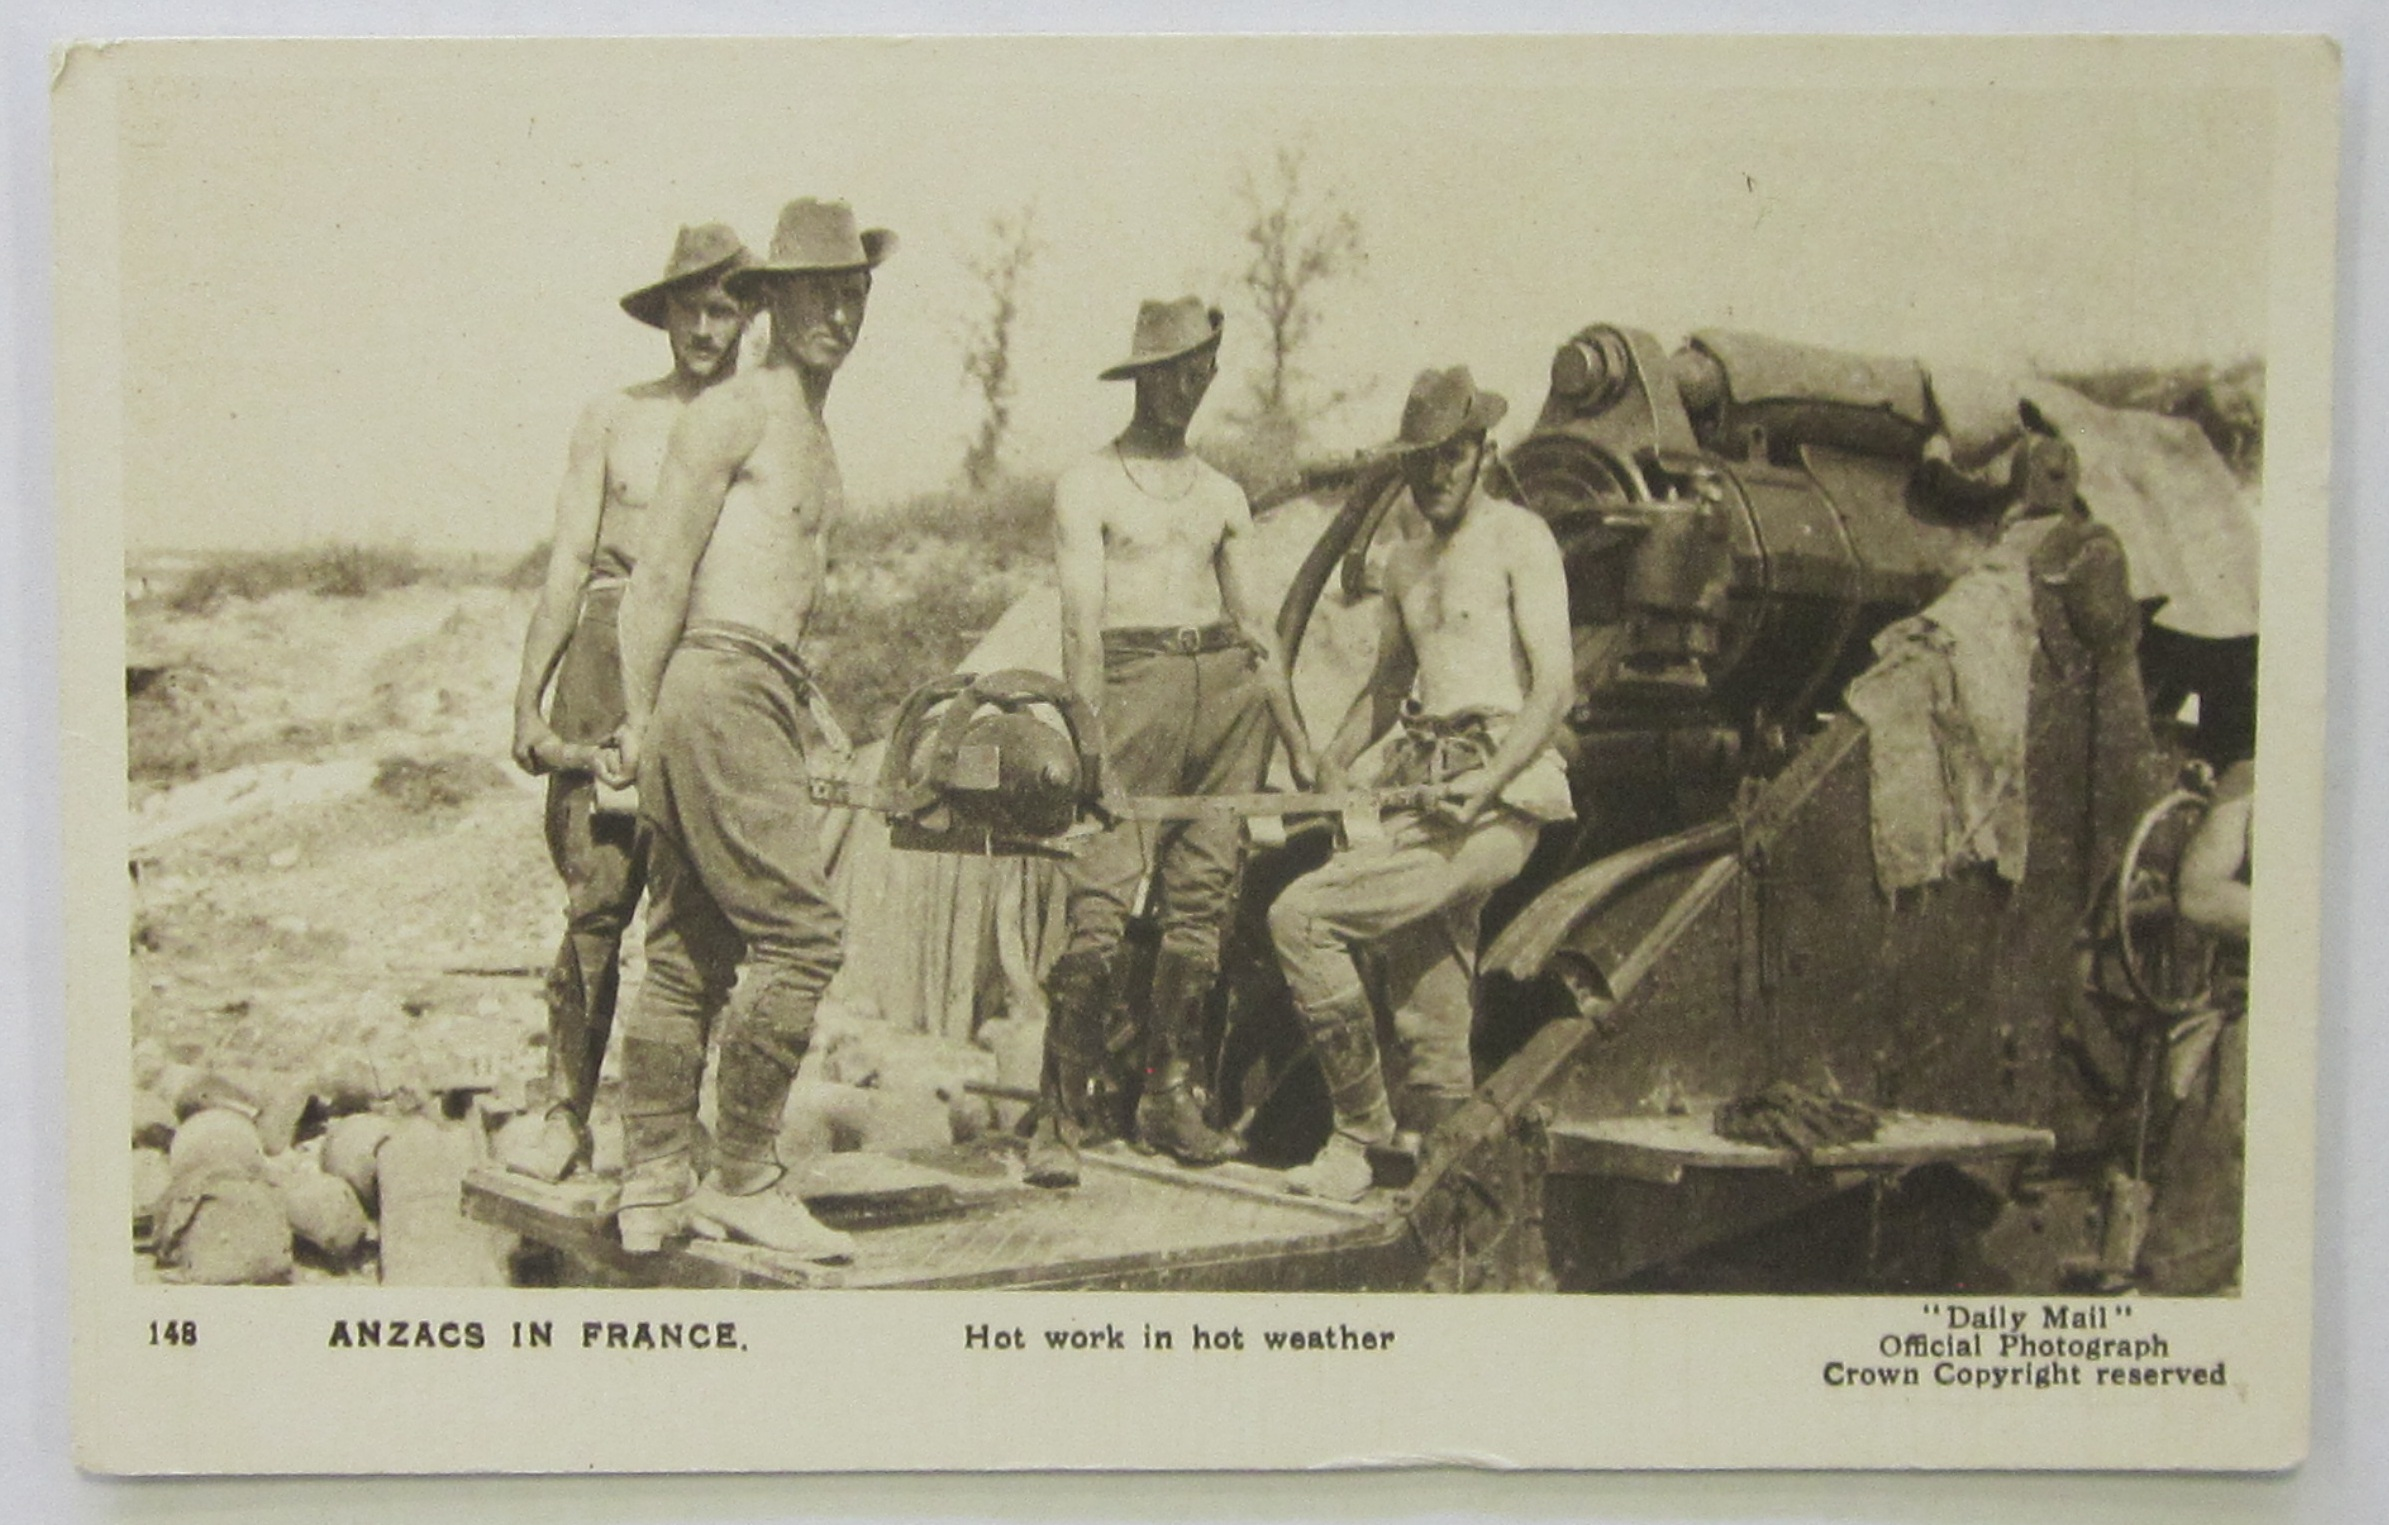 Anzacs in the trenches in France (Gold Museum collection, 83.12673)